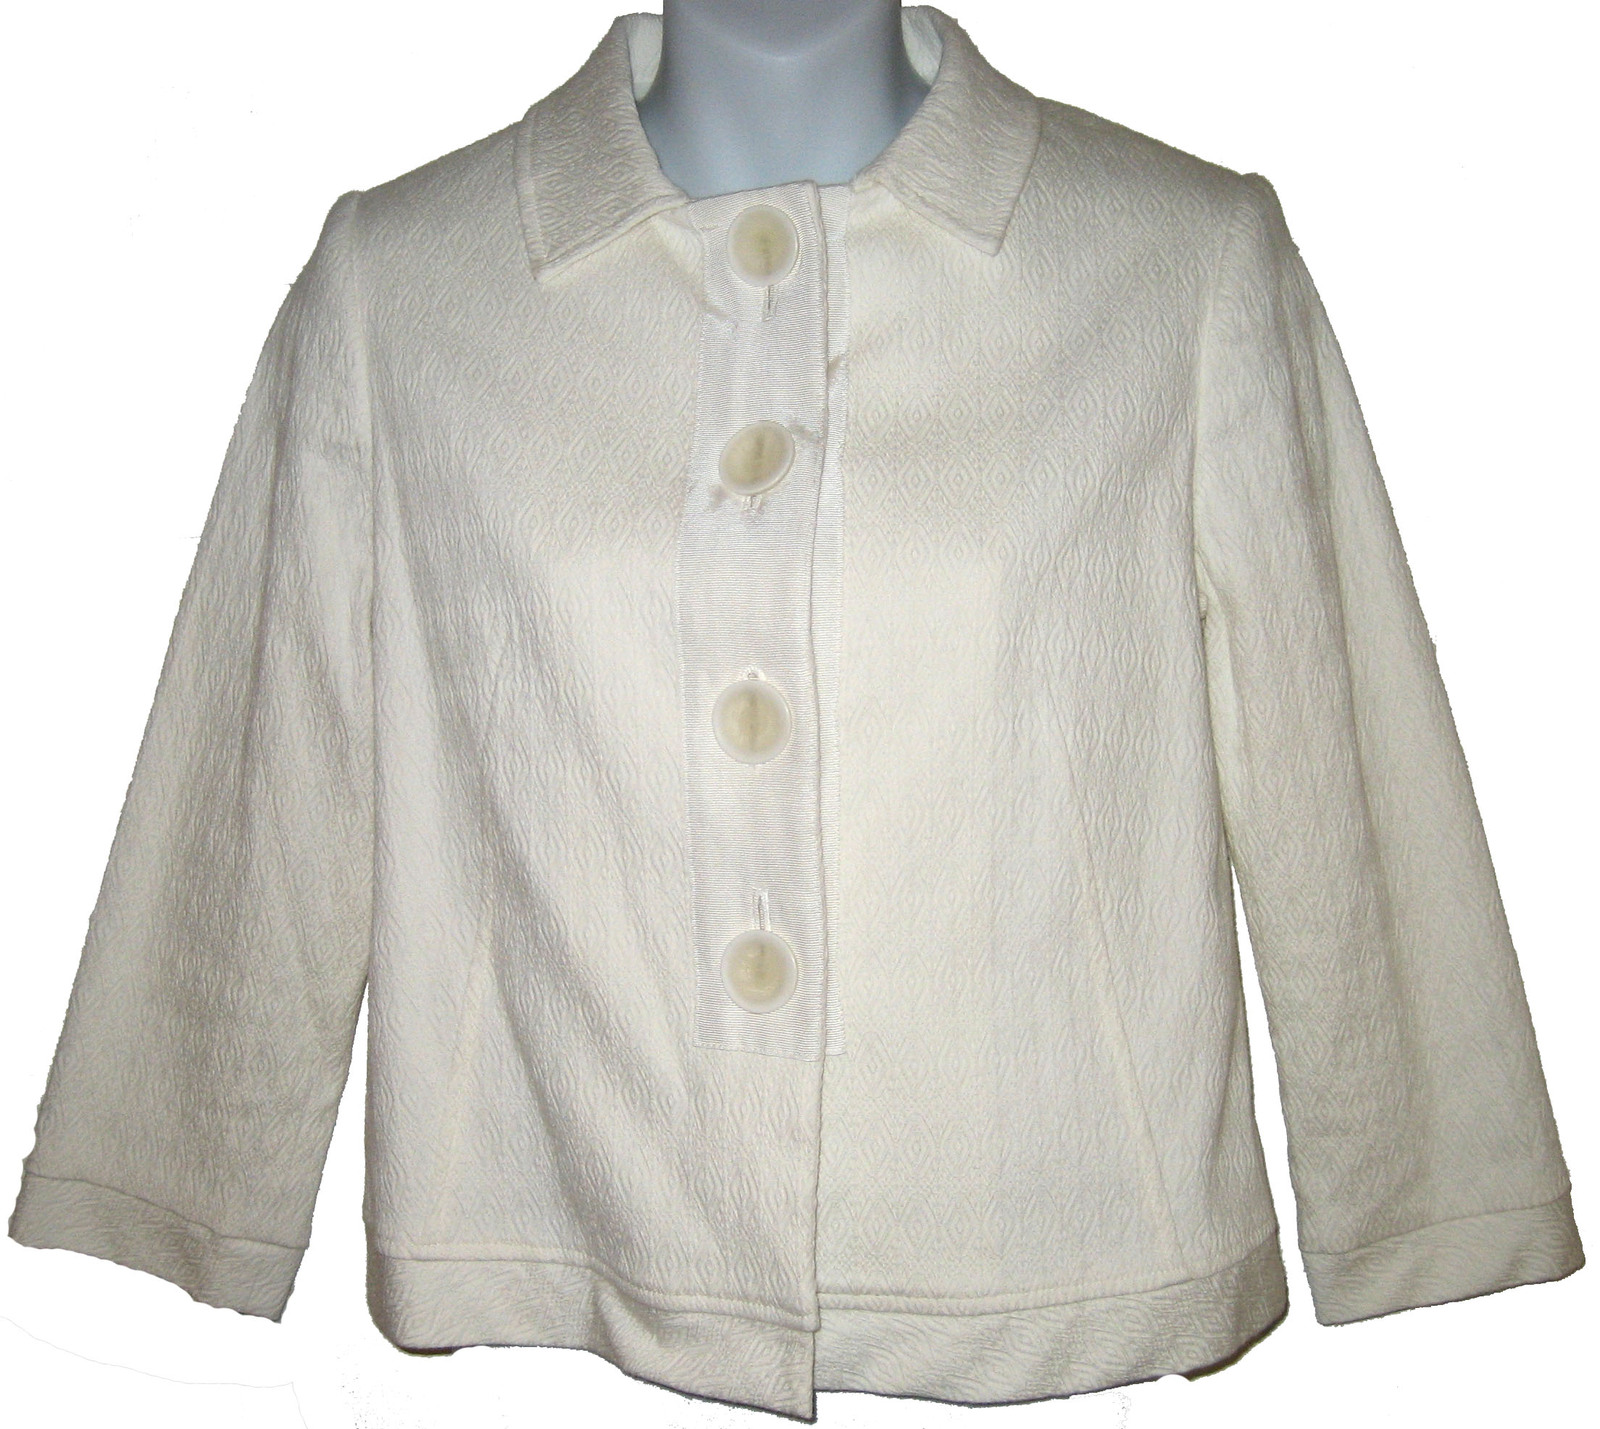 Primary image for Philippe Adec jacquard cropped jacket sz 6 US / 40 EUR NEW $175